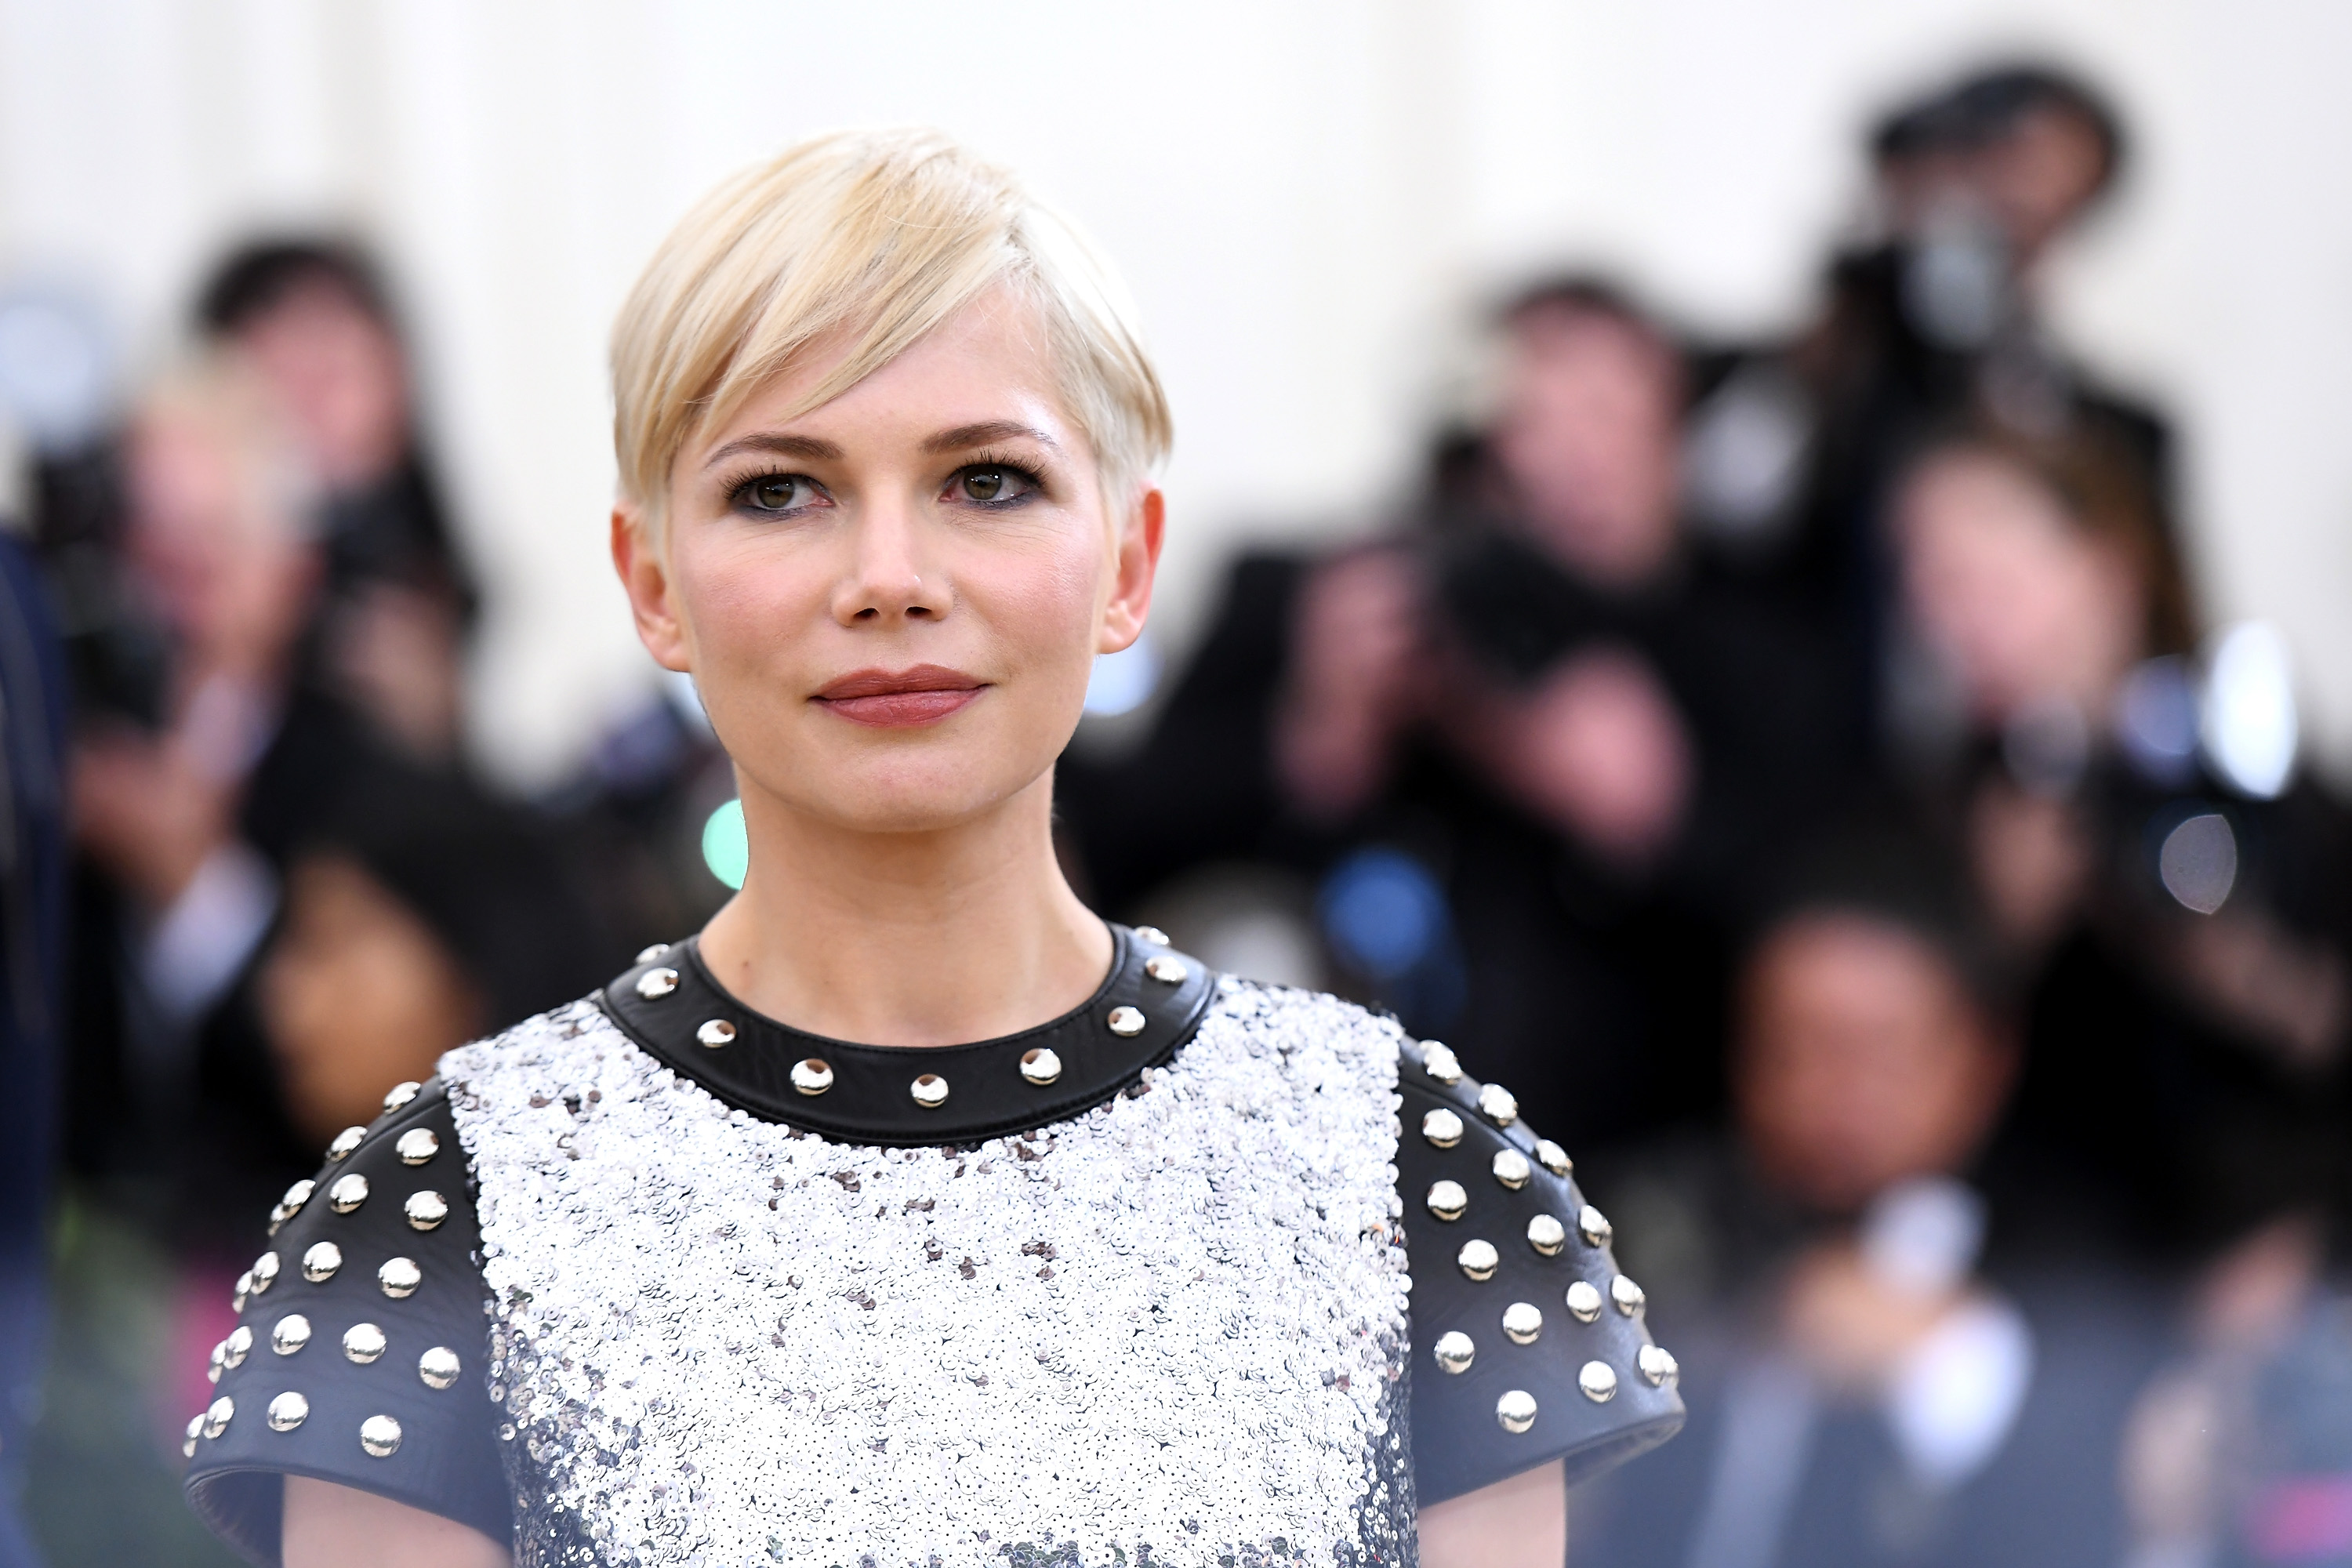 Actor Michelle Williams attends the Heavenly Bodies: Fashion & The Catholic Imagination Costume Institute Gala at The Metropolitan Museum of Art on May 7, 2018 in New York City